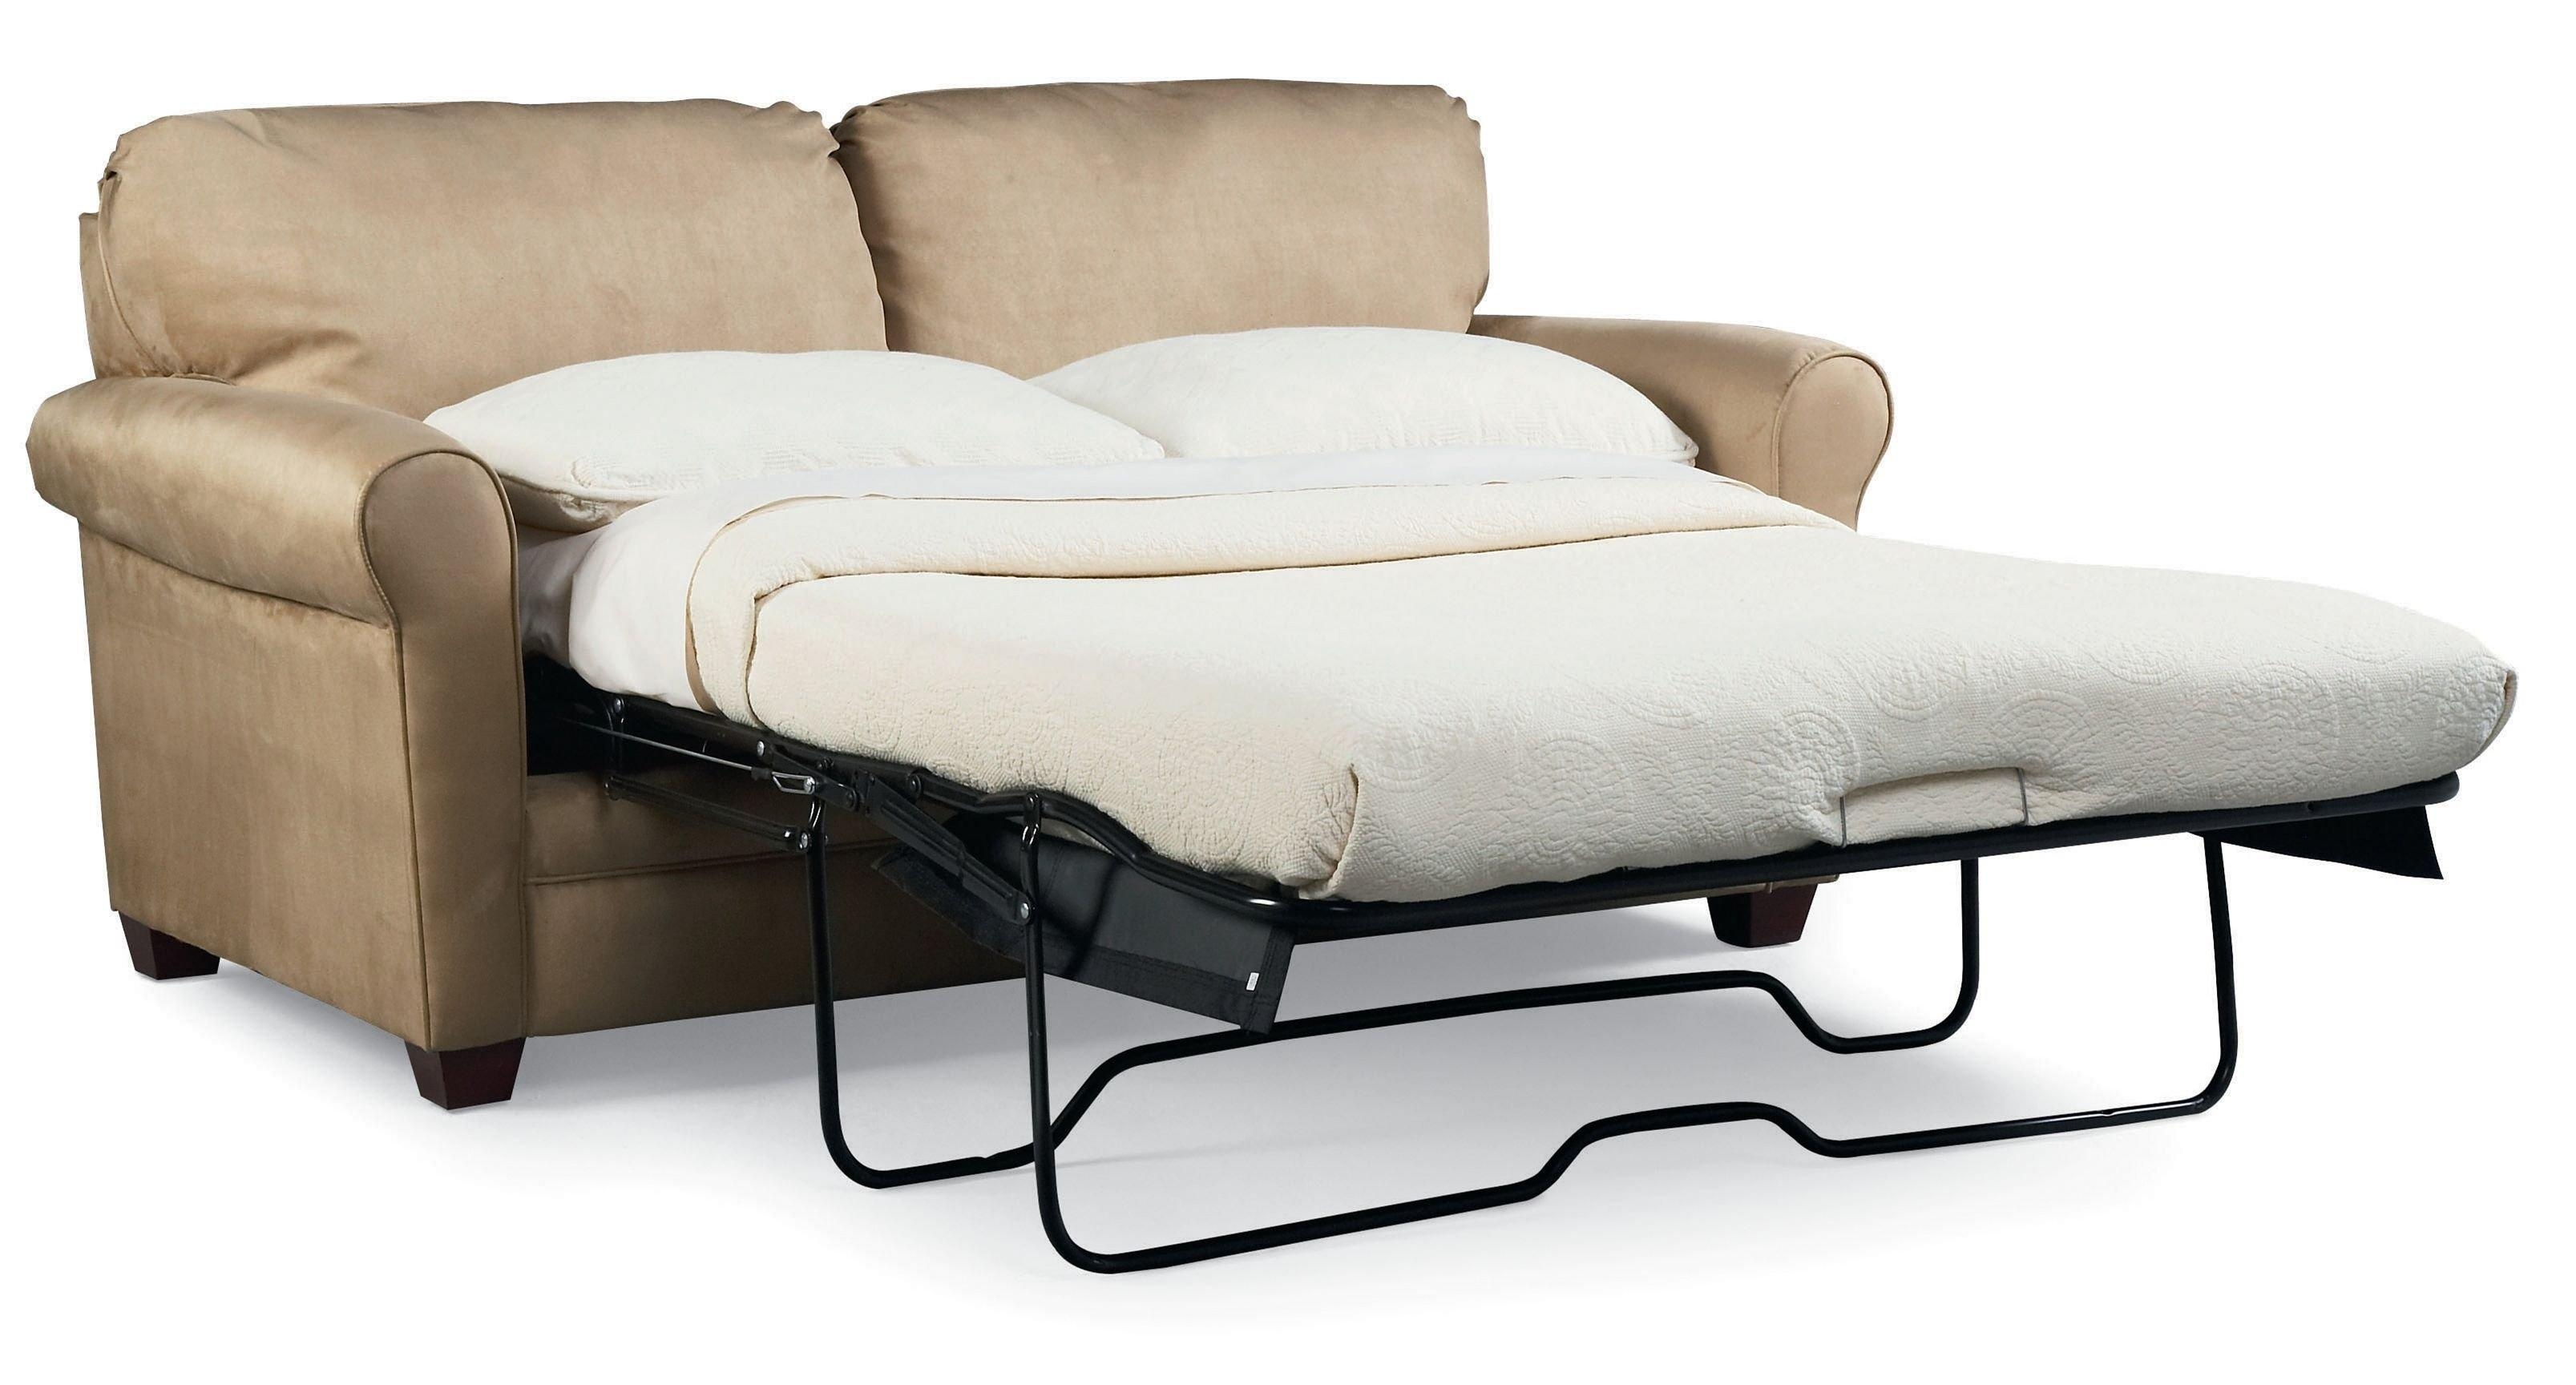 Sofas Center : Sleeper Sofa Queen Size Modern Sofasses For Beds Regarding Queen Sleeper Sofa Sheets (Image 17 of 20)